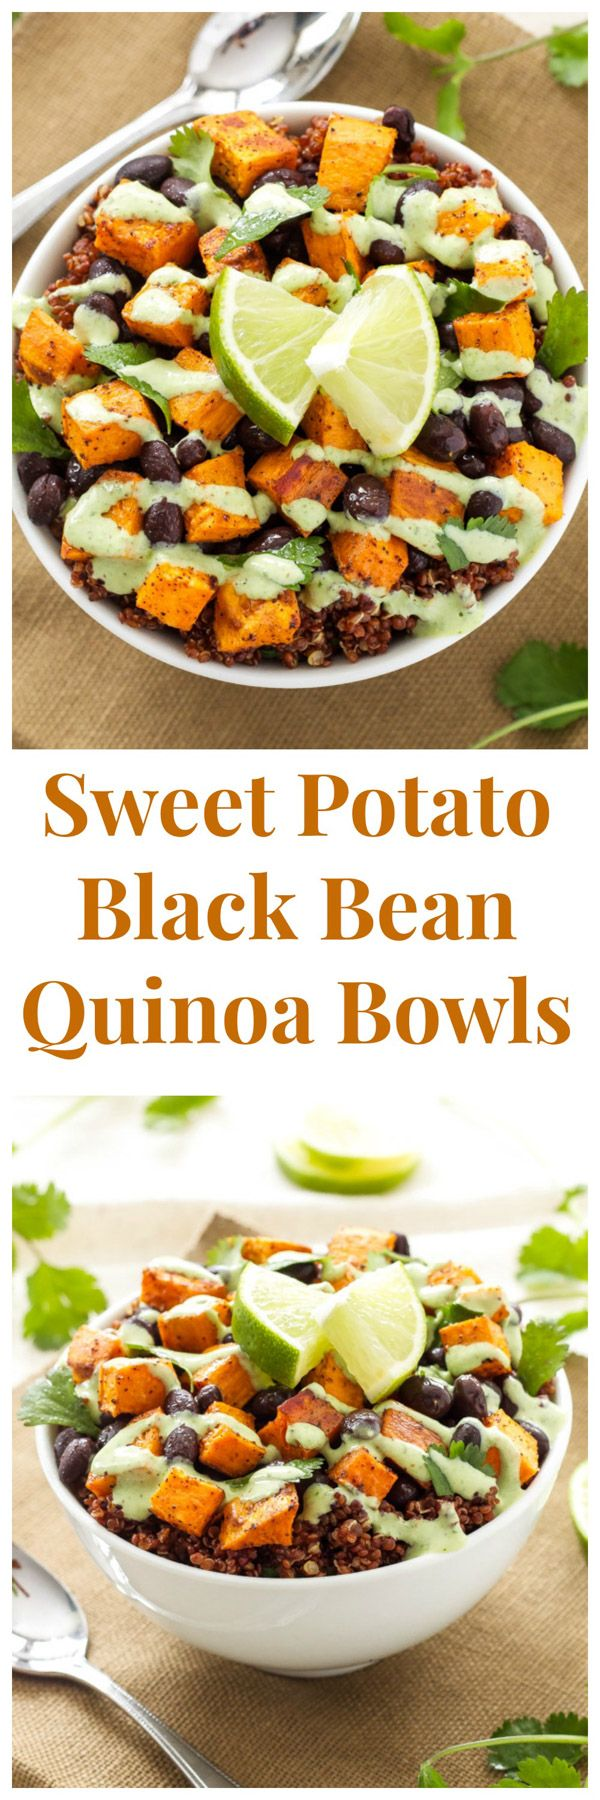 Sweet Potato and Black Bean Quinoa Bowls #vegetarian #veggiebowls #sweetpotatorecipes | Diet | Black bean quinoa, Food, Vegan recipes